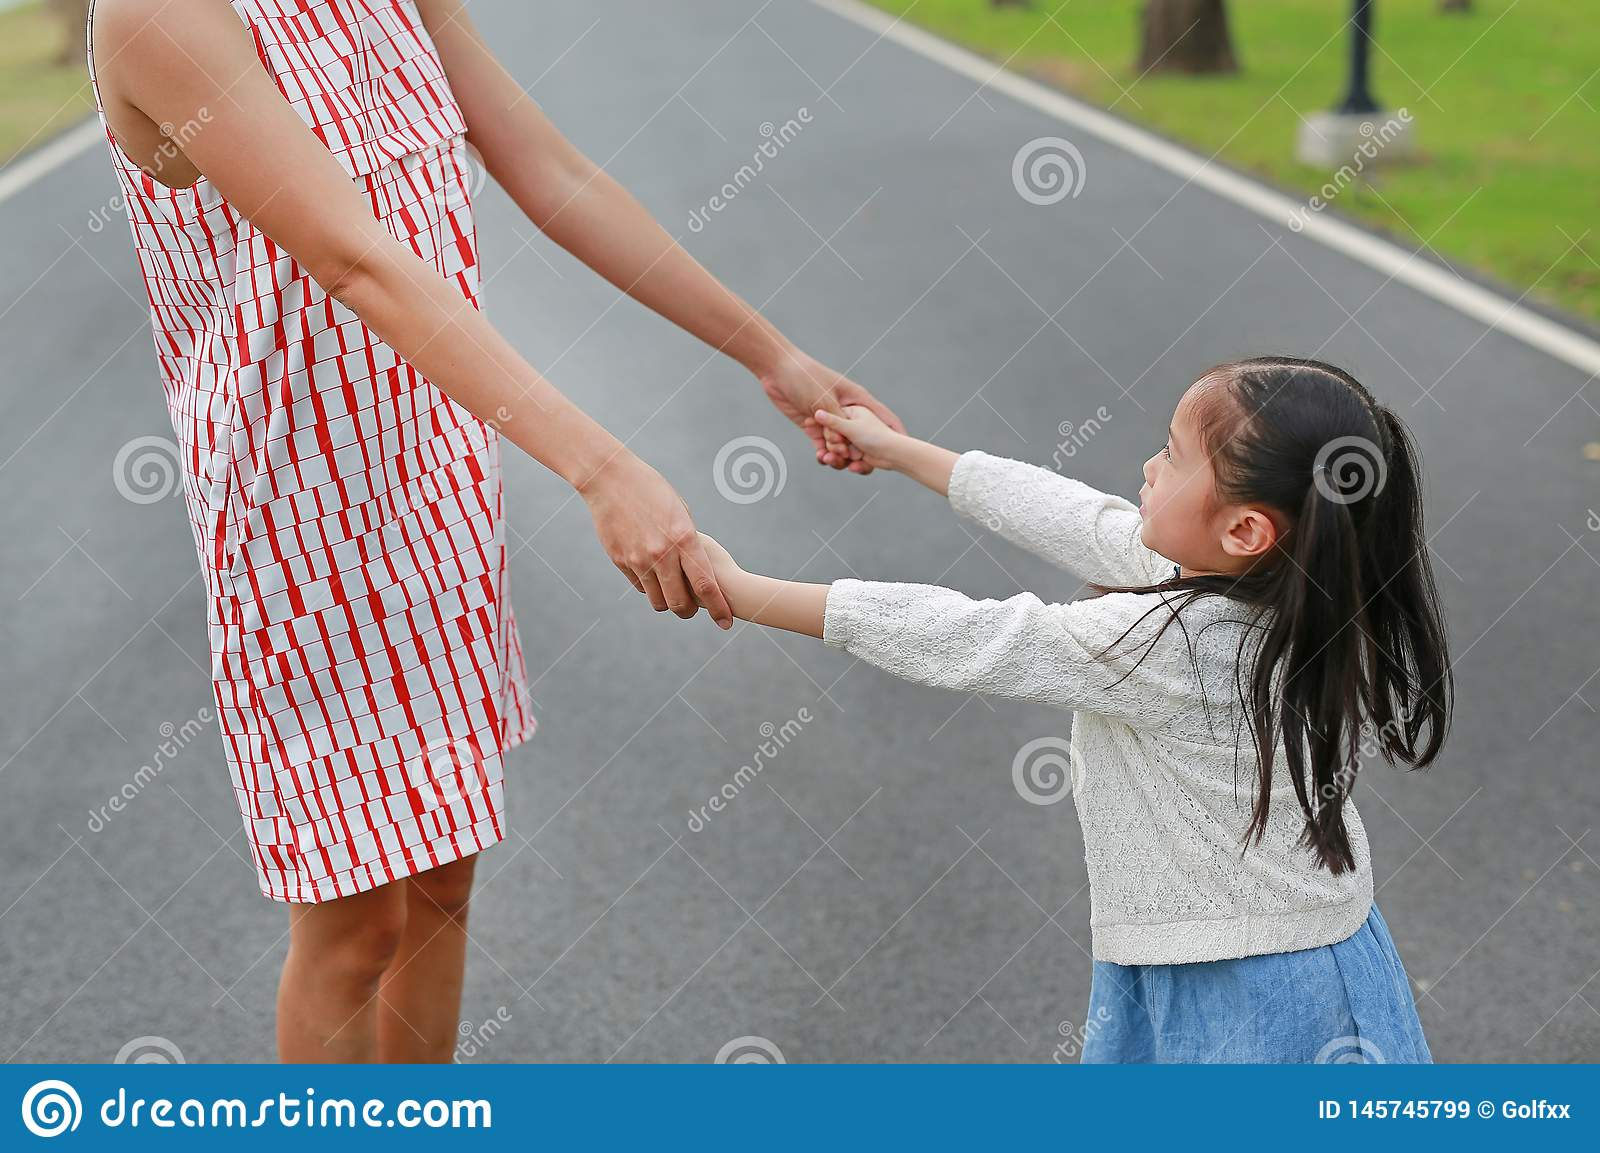 Little daughter holding mother hands in the outdoor nature garden